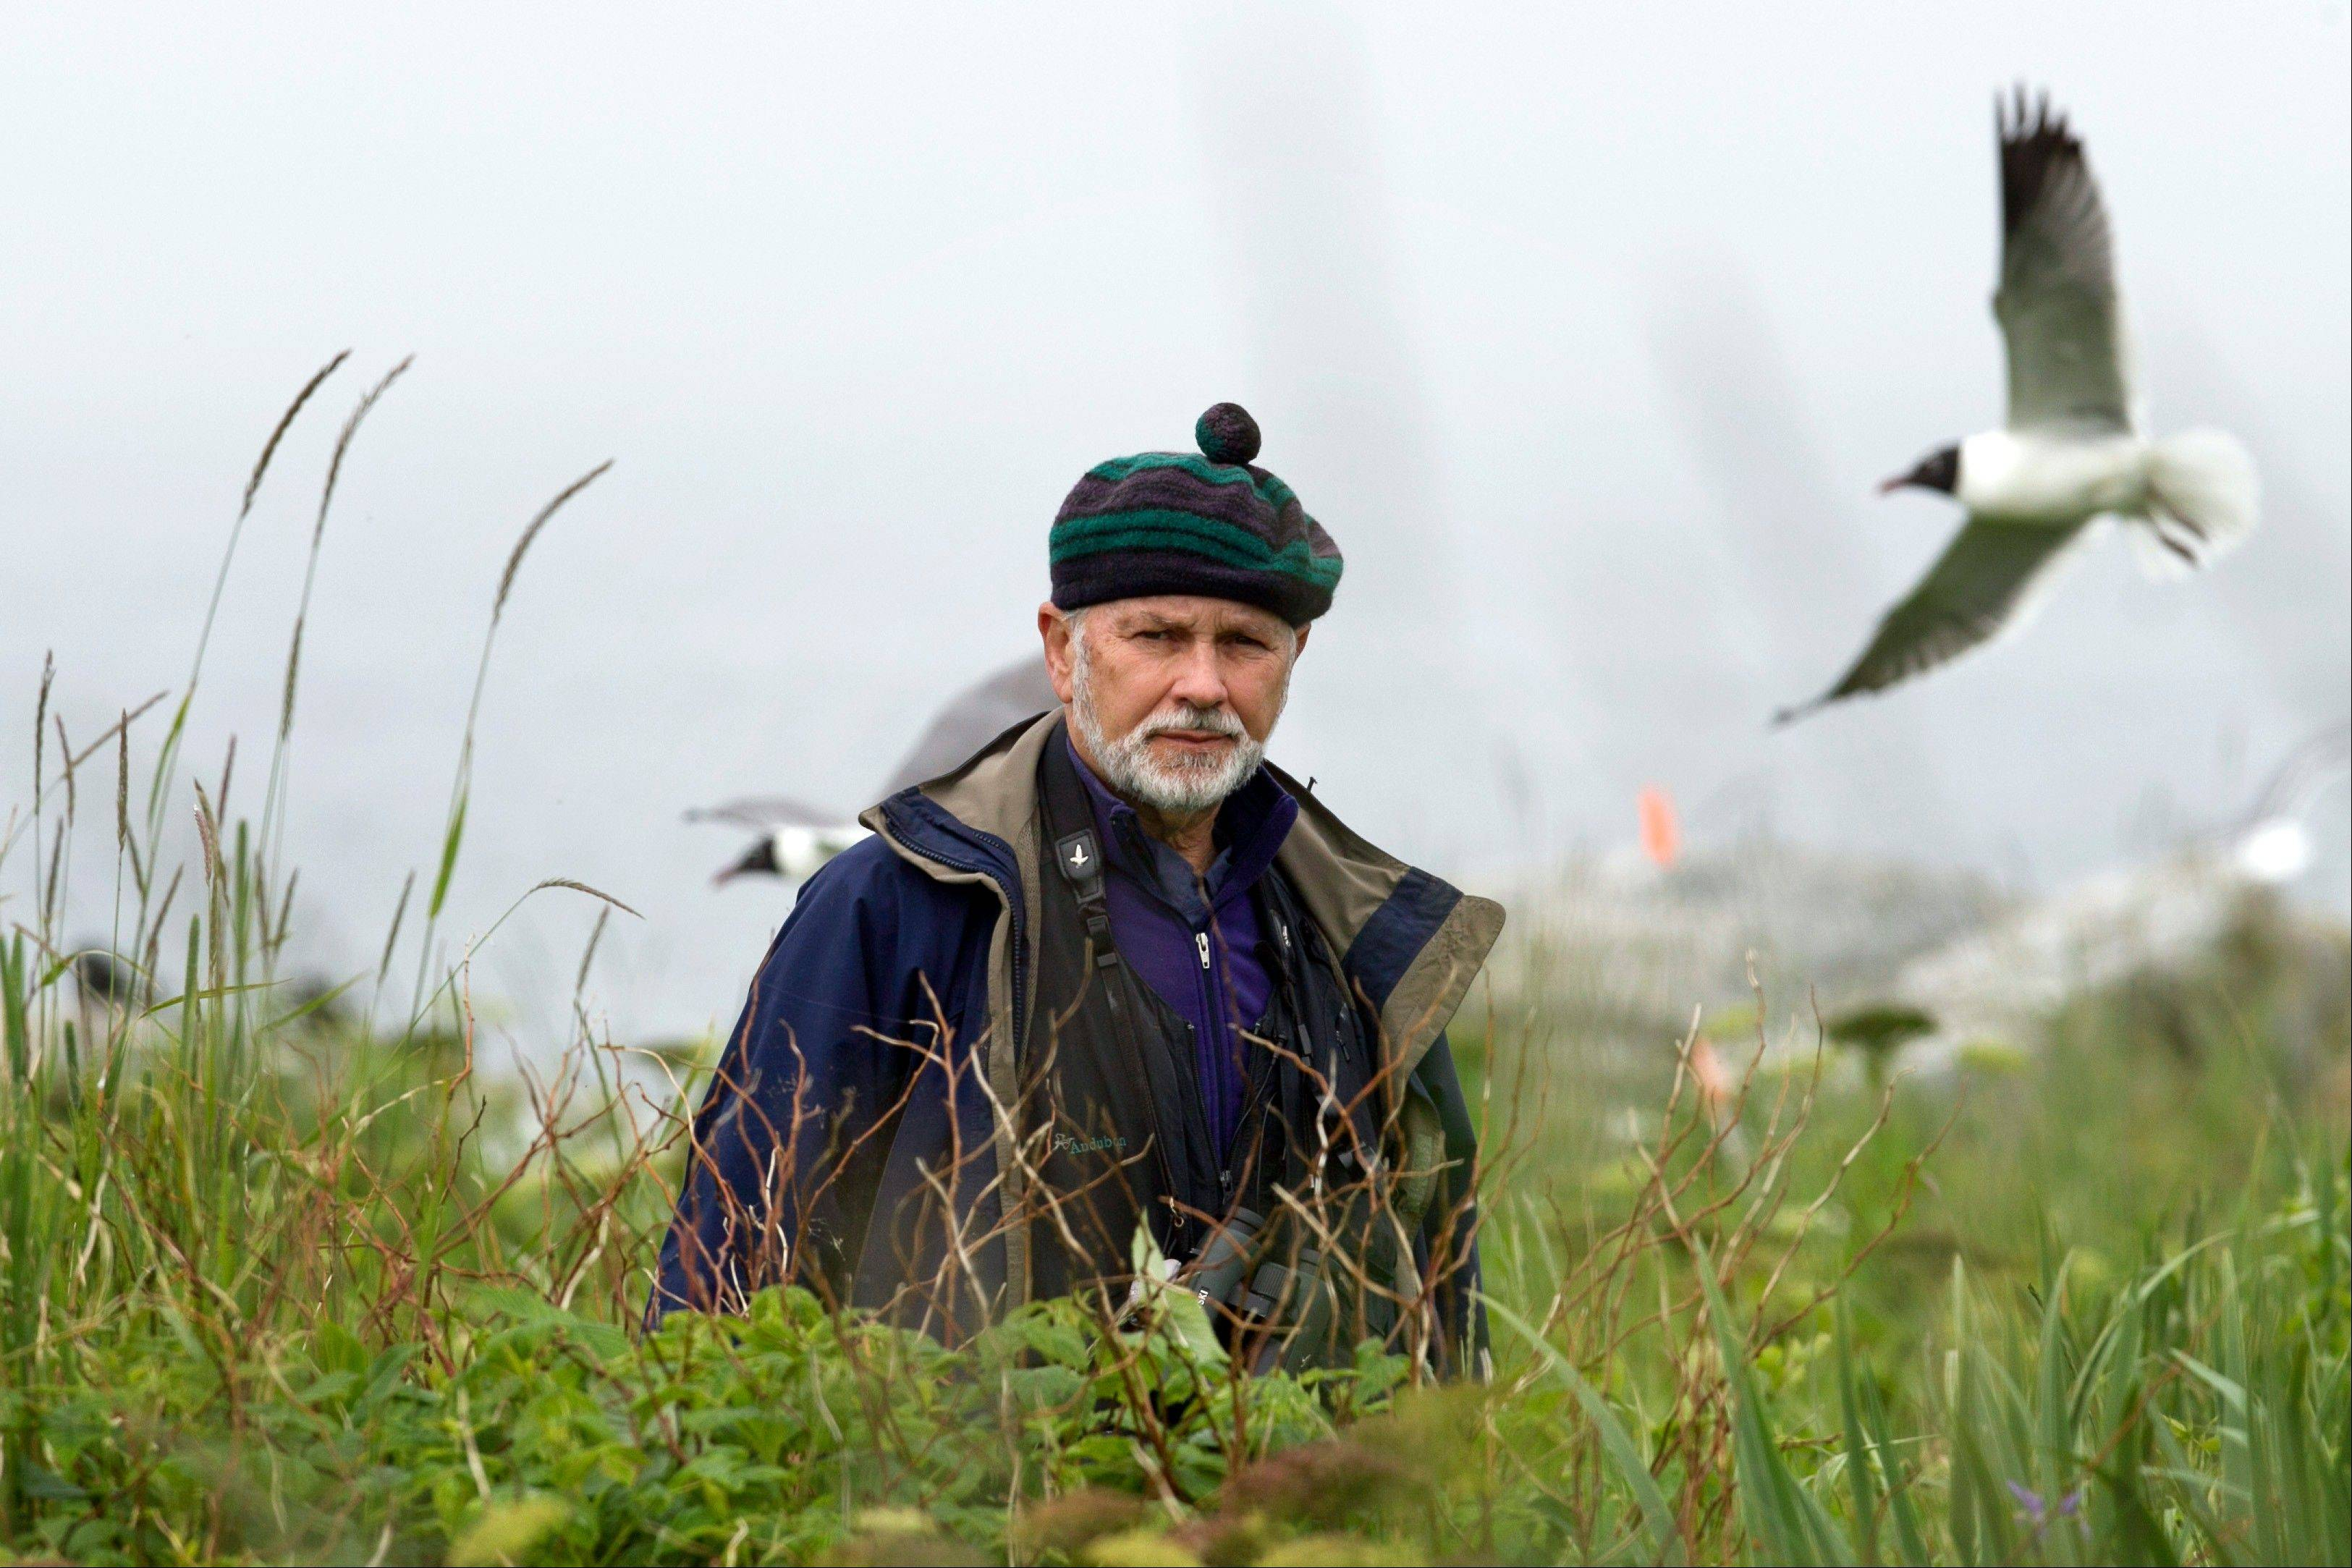 Dr. Steve Kress walks through tall vegetation on Eastern Egg Rock, a seven-acre island where he led the successful effort to recolonize puffins off the Maine coast.